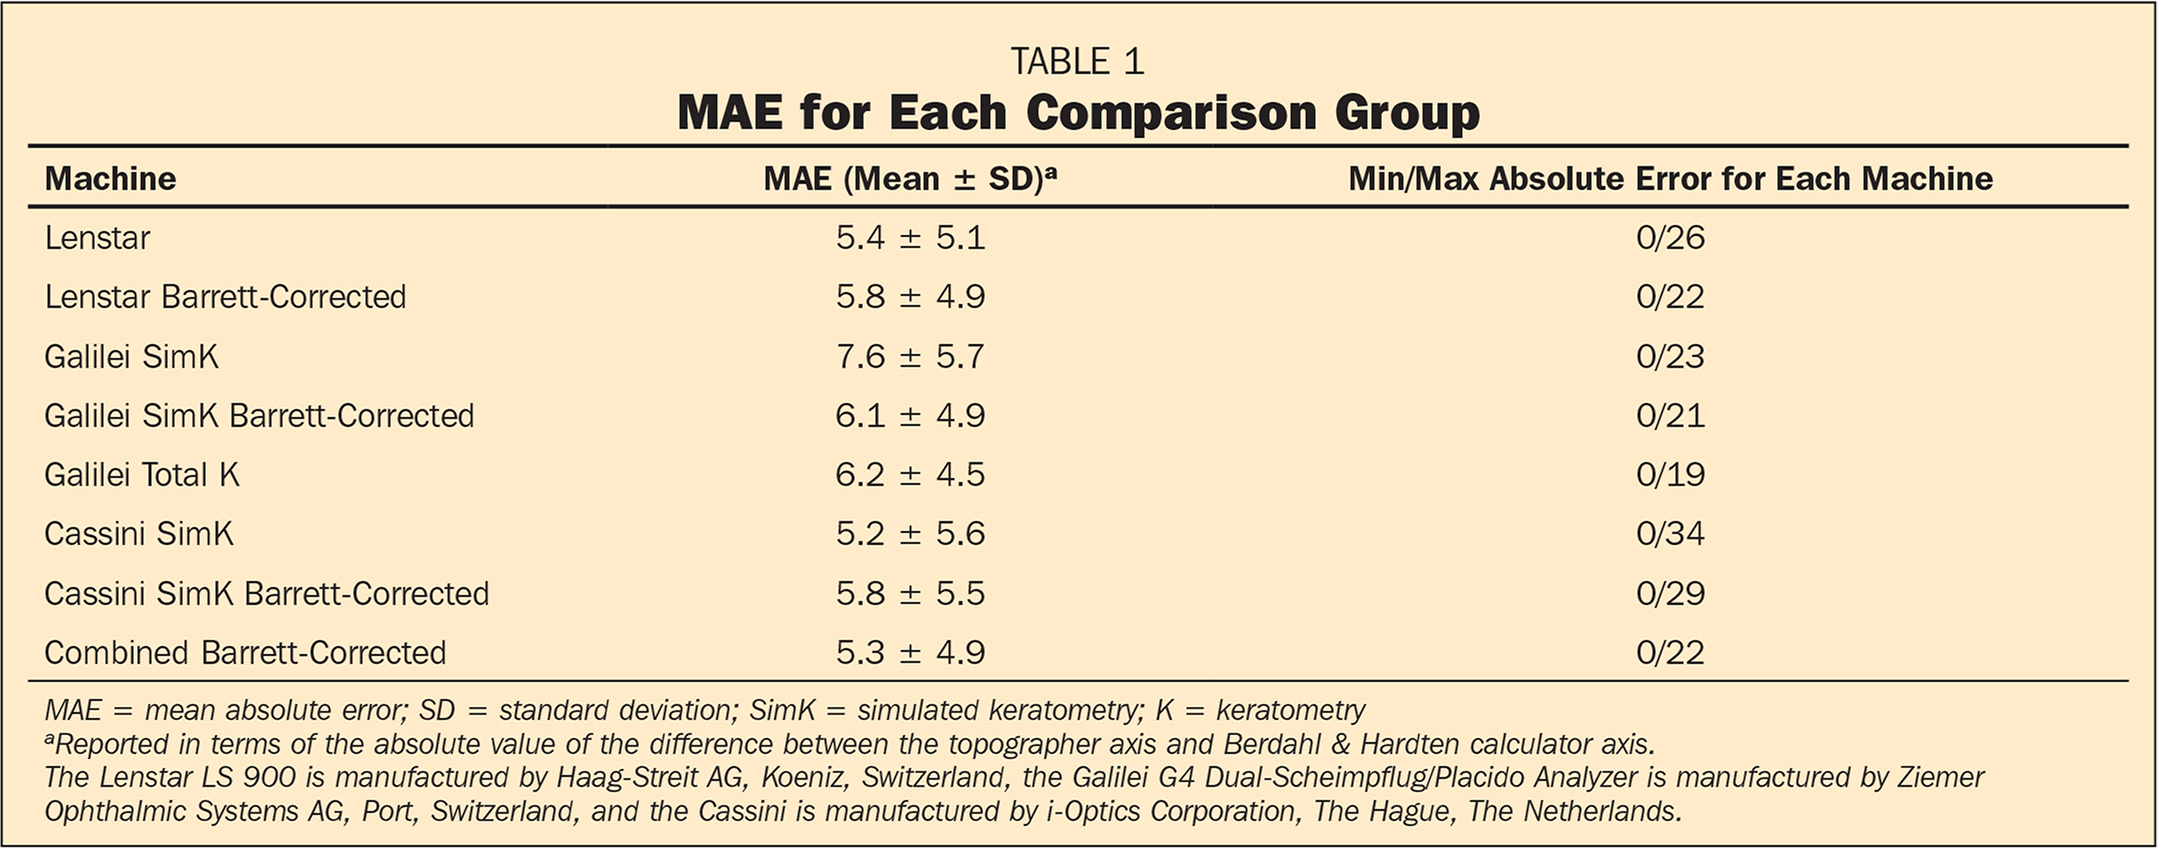 MAE for Each Comparison Group